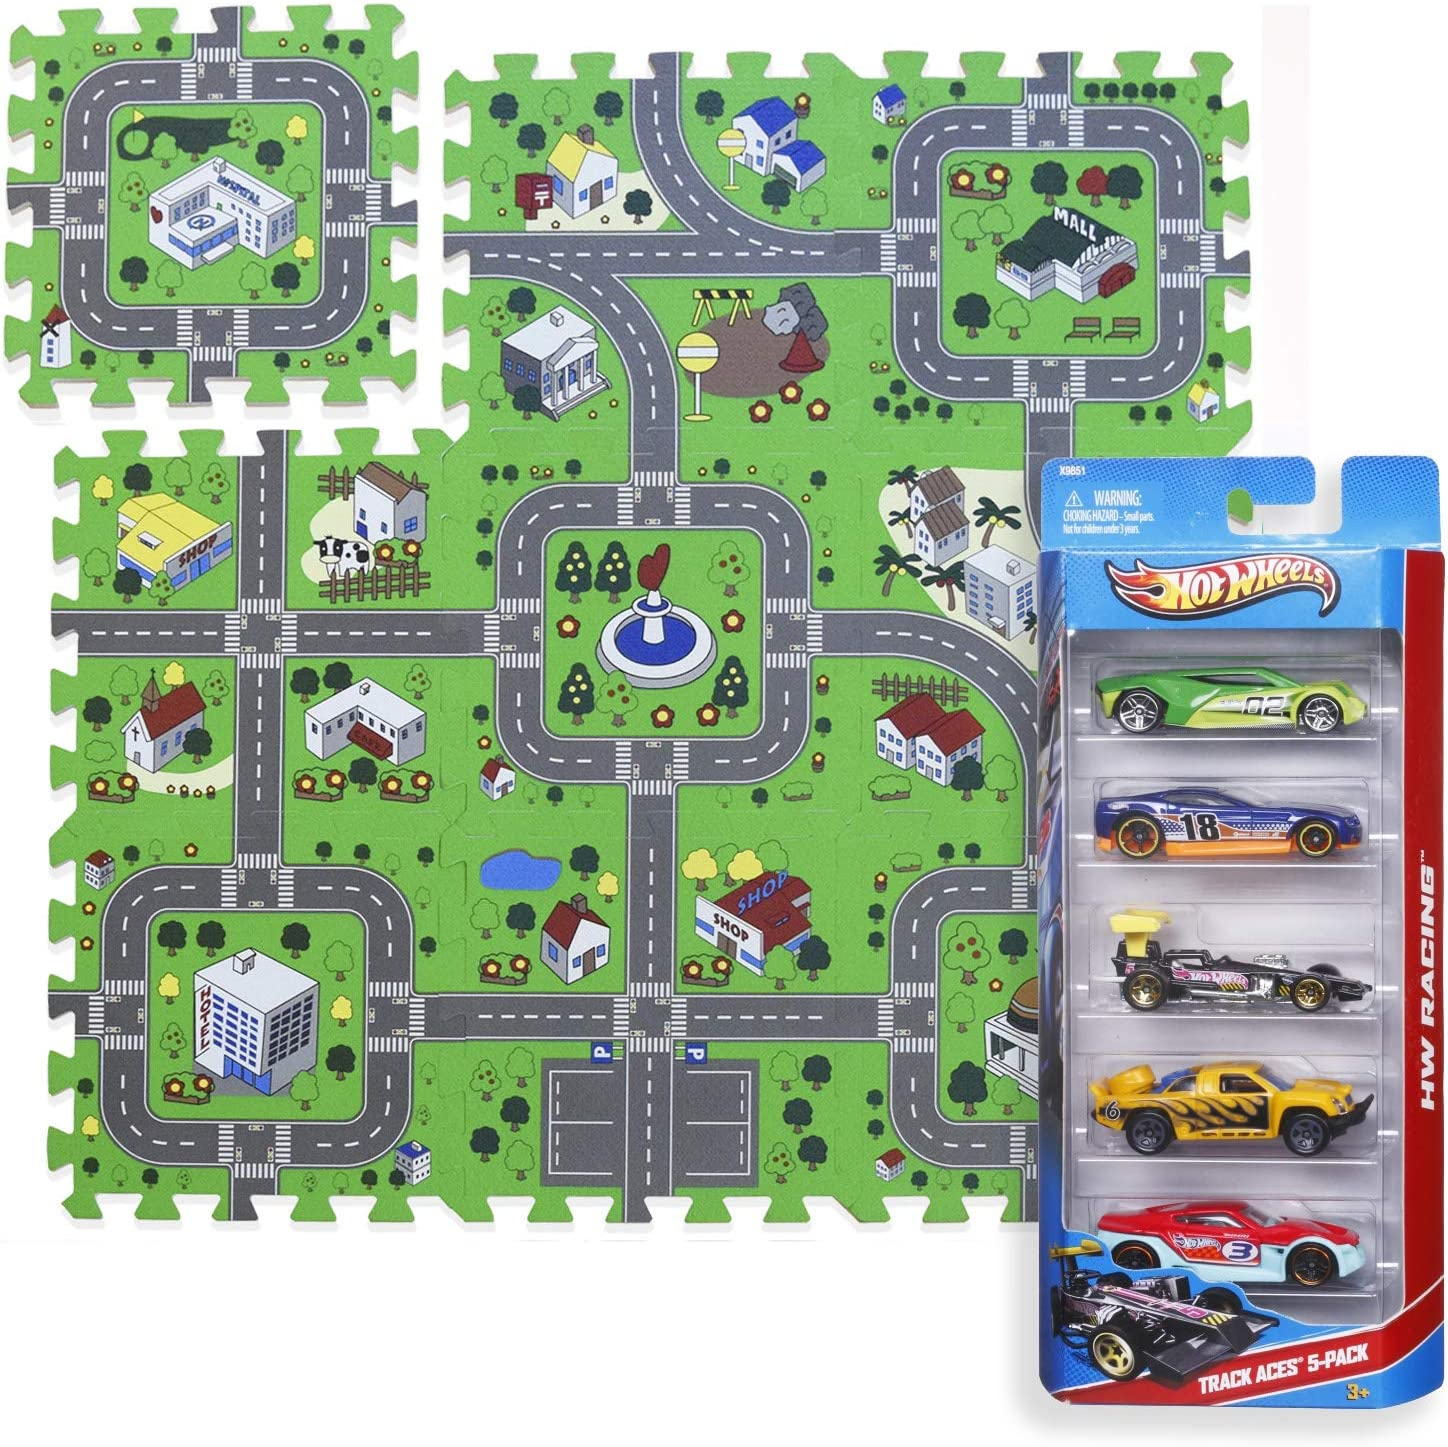 Play Mat Road Toy Foam Playmat Interlocking Floor Puzzle Road Playroom Mat Interactive Play Set Bundle with Hot Wheels Cars (5 pc - Car Set): Toys & Games